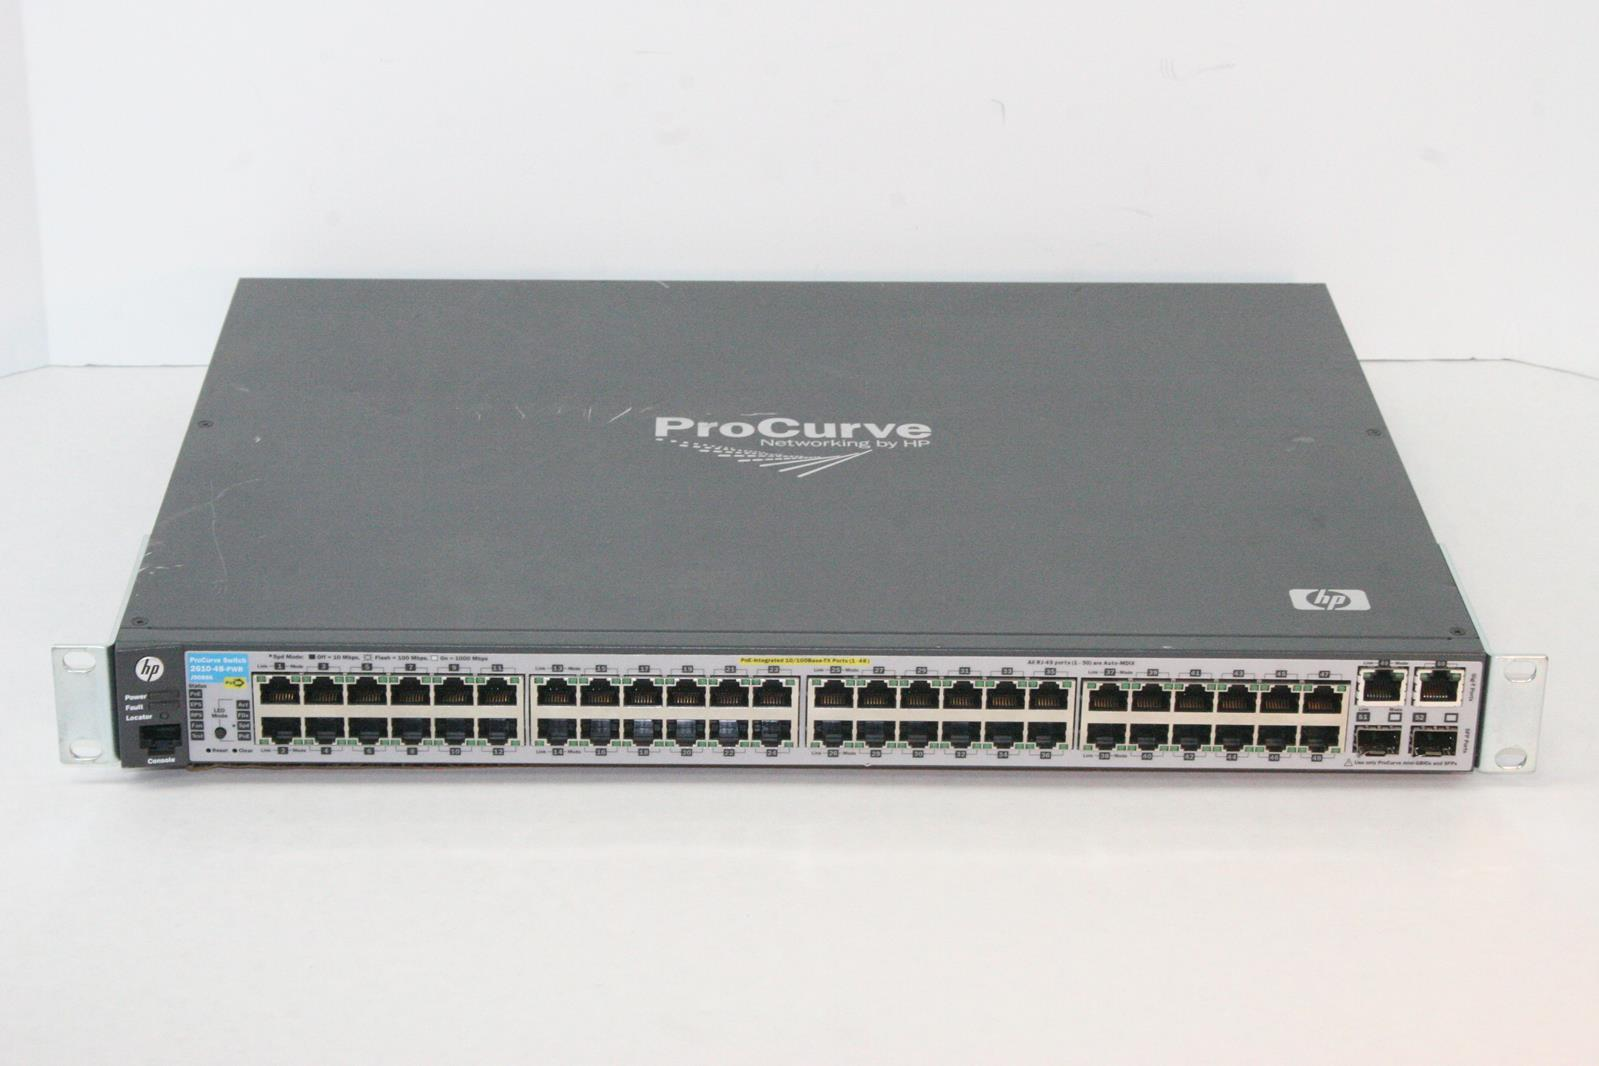 HP 2610-48-PWR 48-Port PoE Network Switch